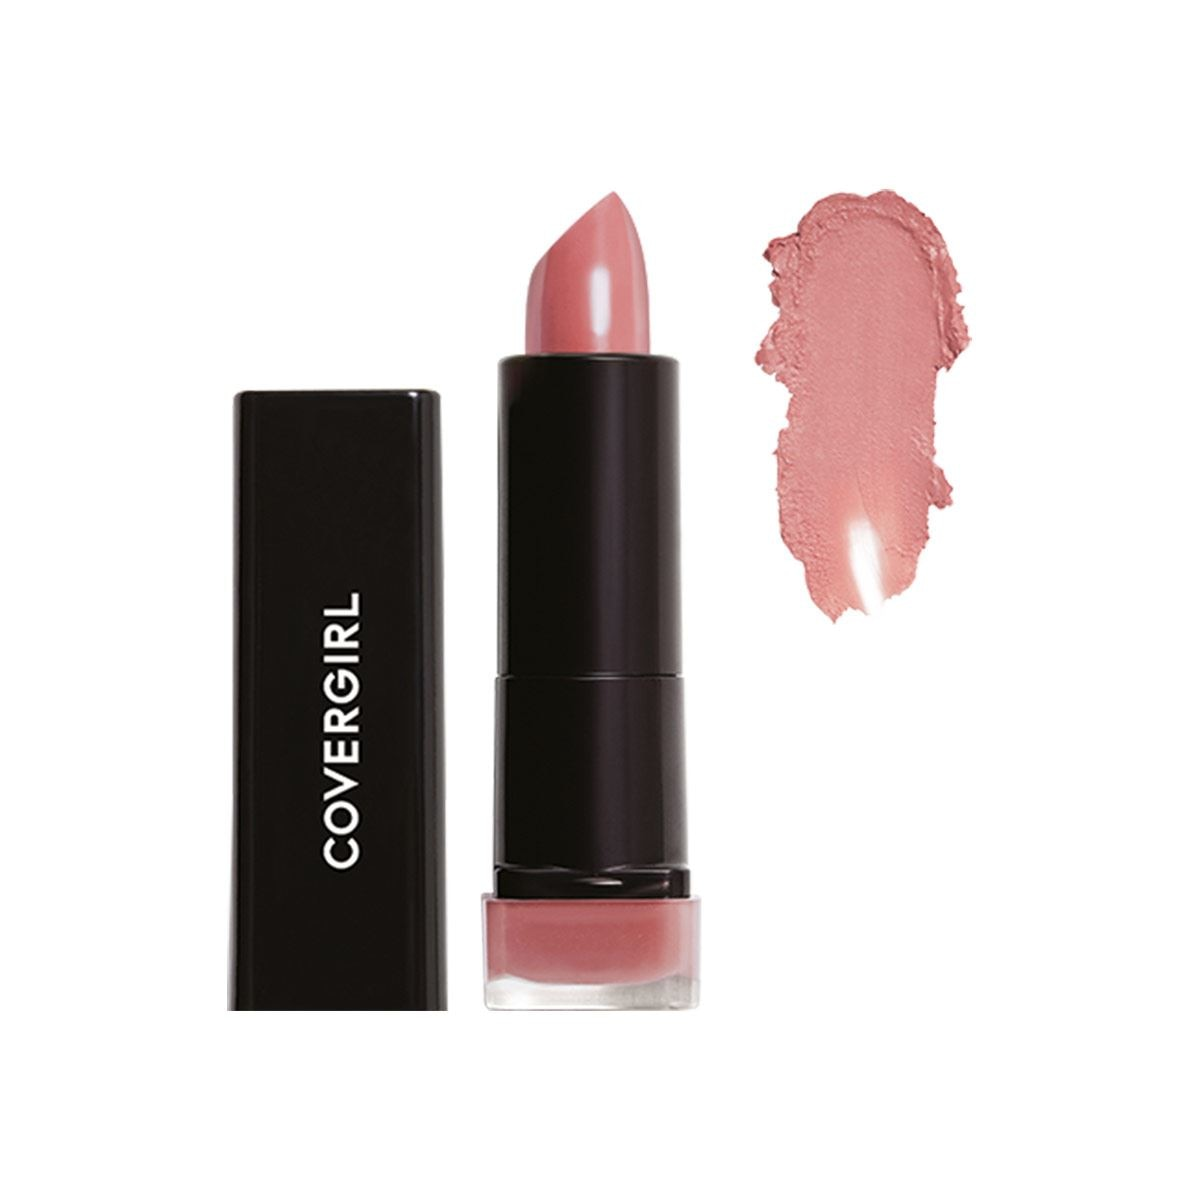 Labial Exhibitionist Cremes Sultry Sienna Covergirl